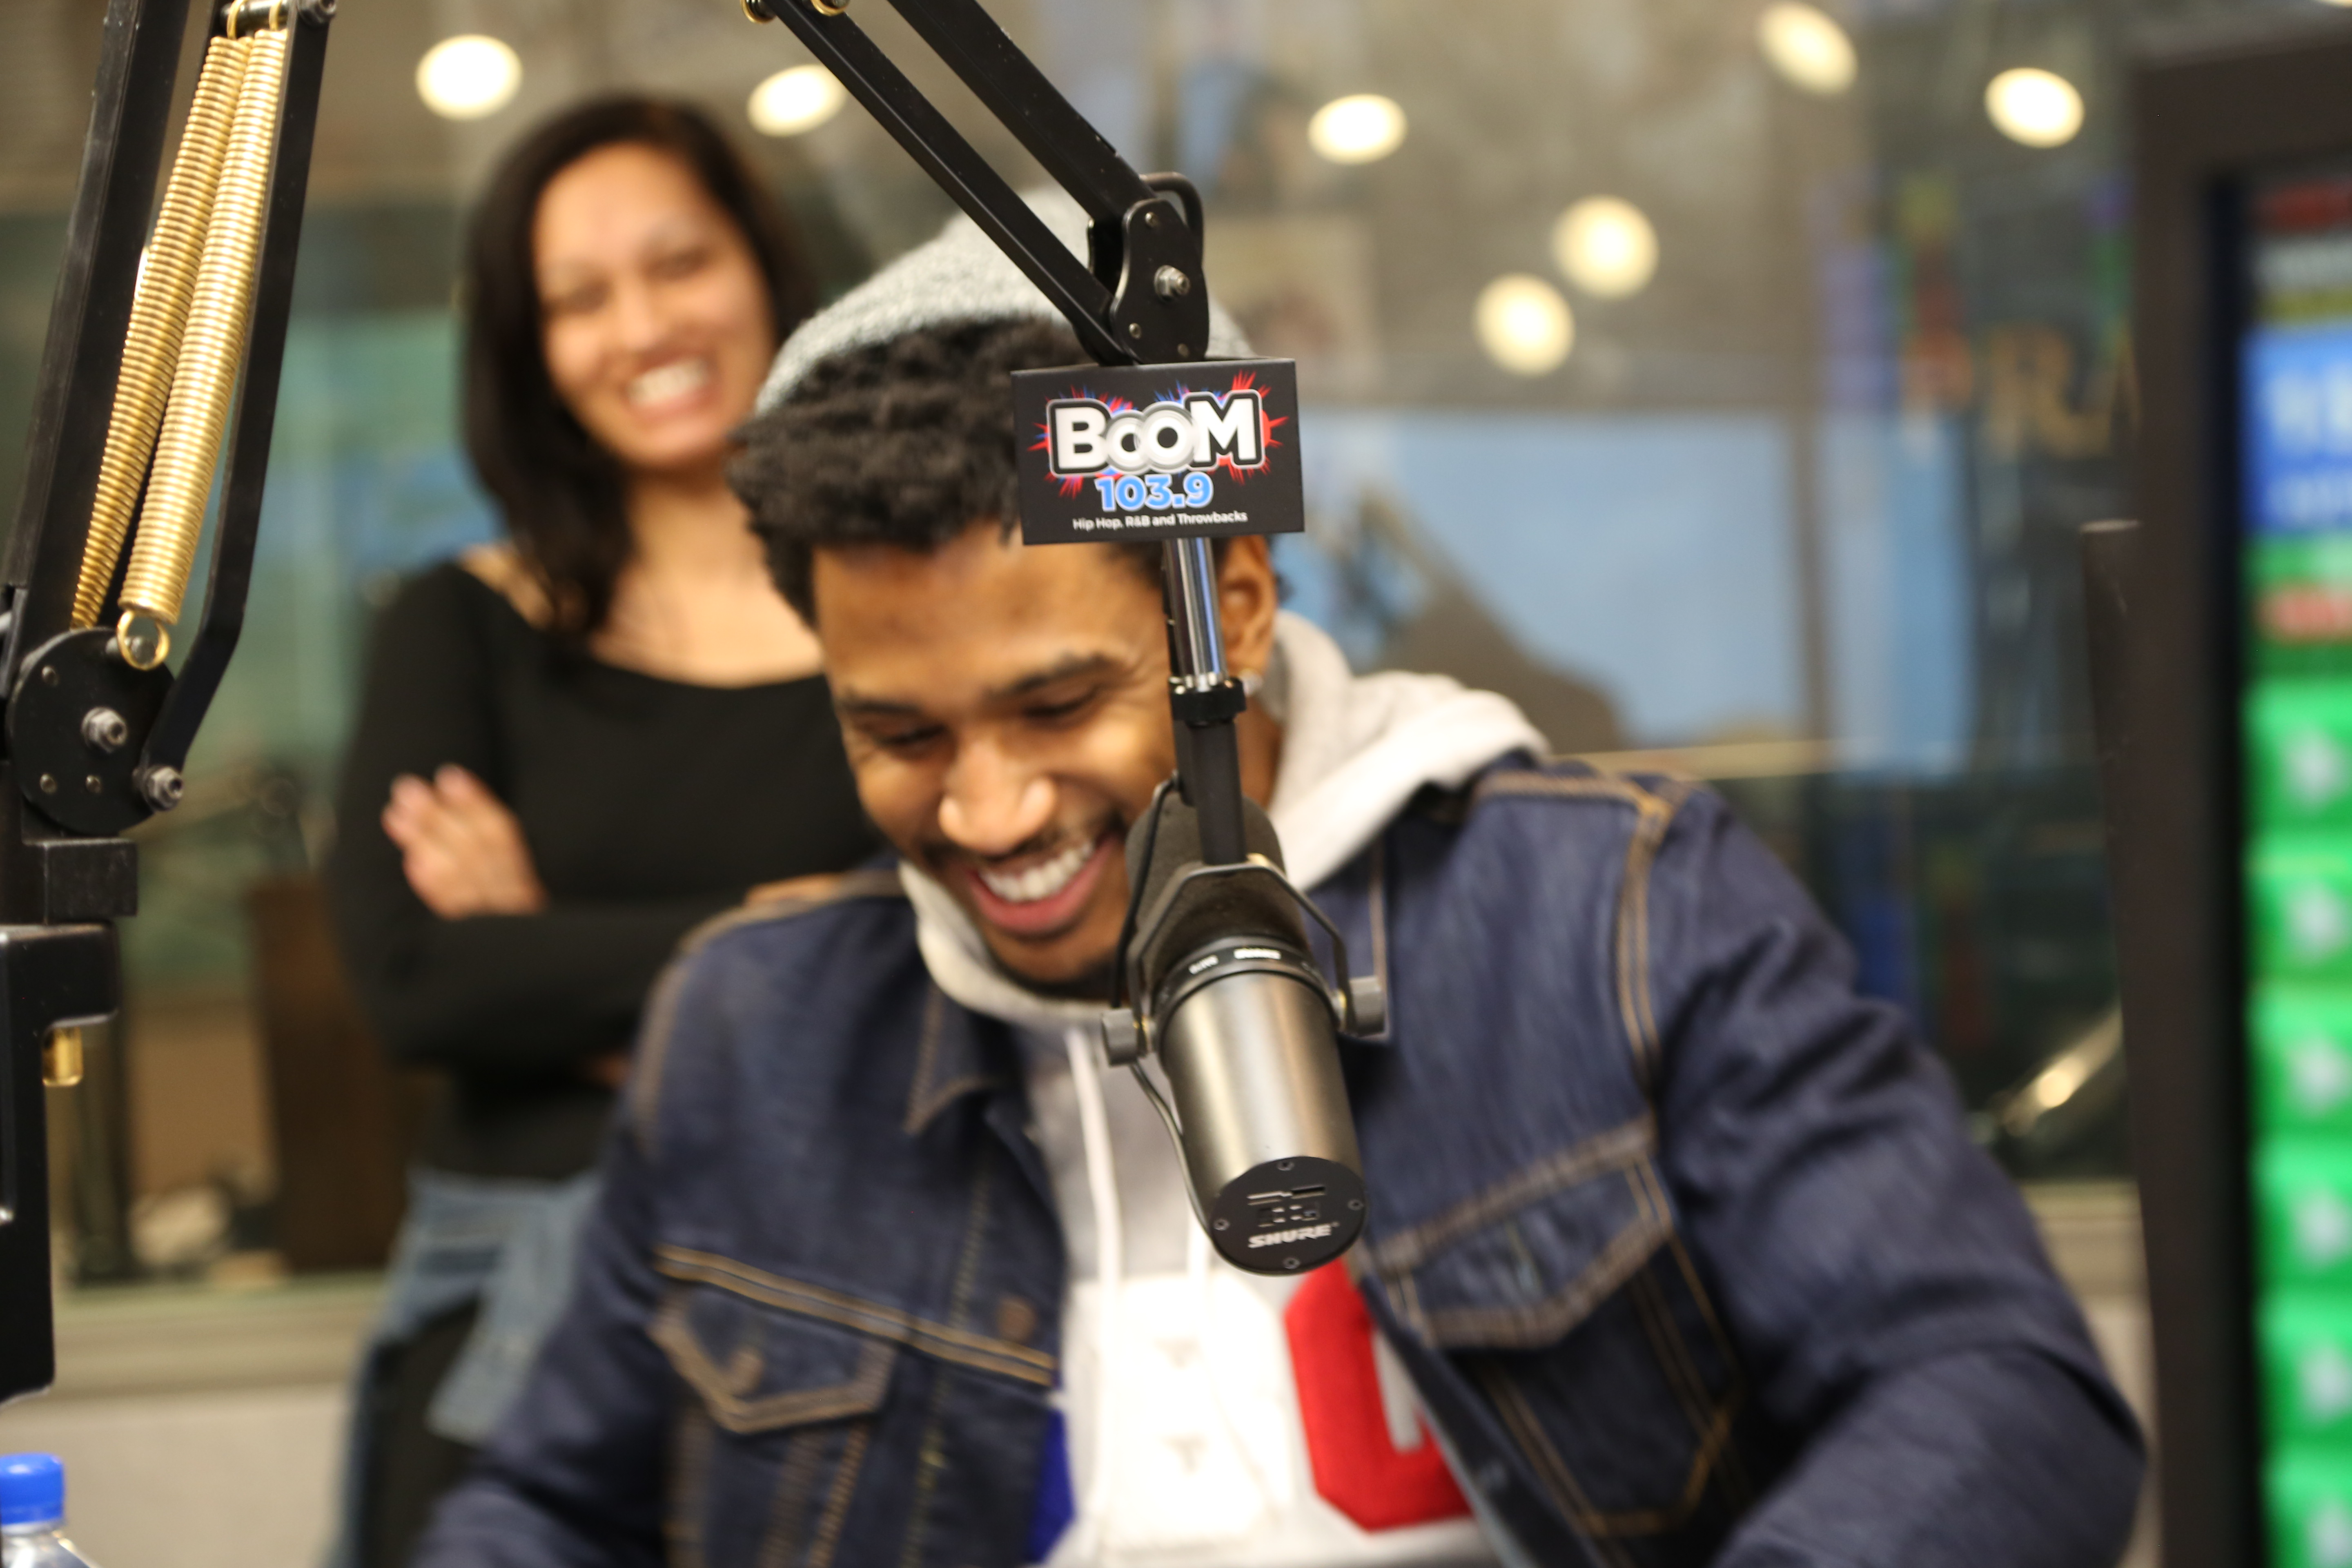 Trey Songz at Boom 103.9